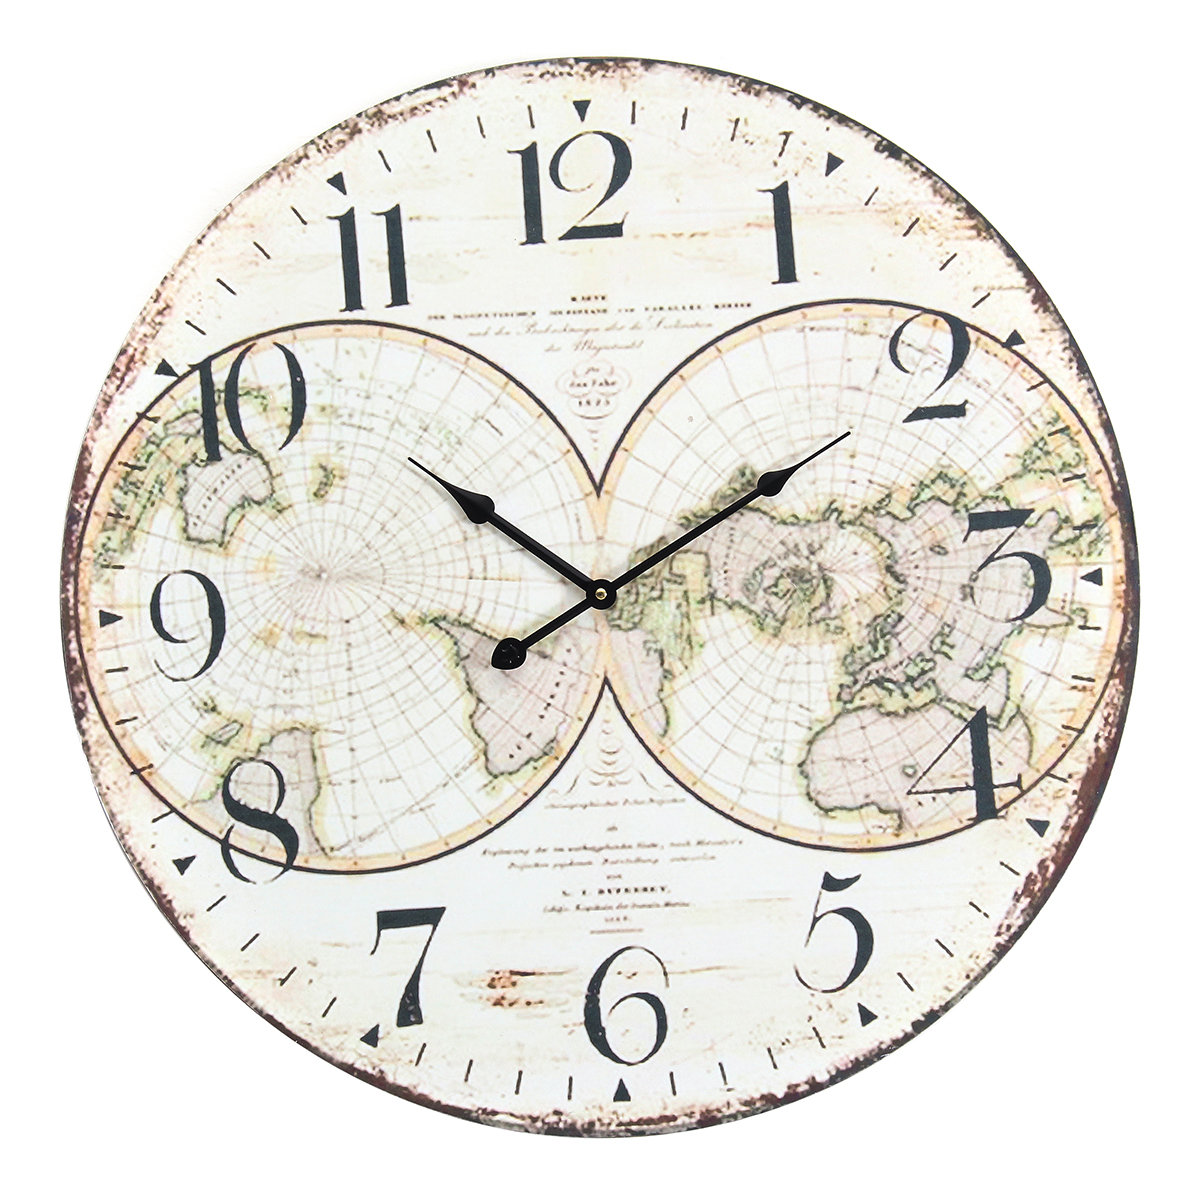 58cm Wall Clock Extra Large Compressed Wooden Retro Wall Clock Lacquer Surface For Home Room Decor